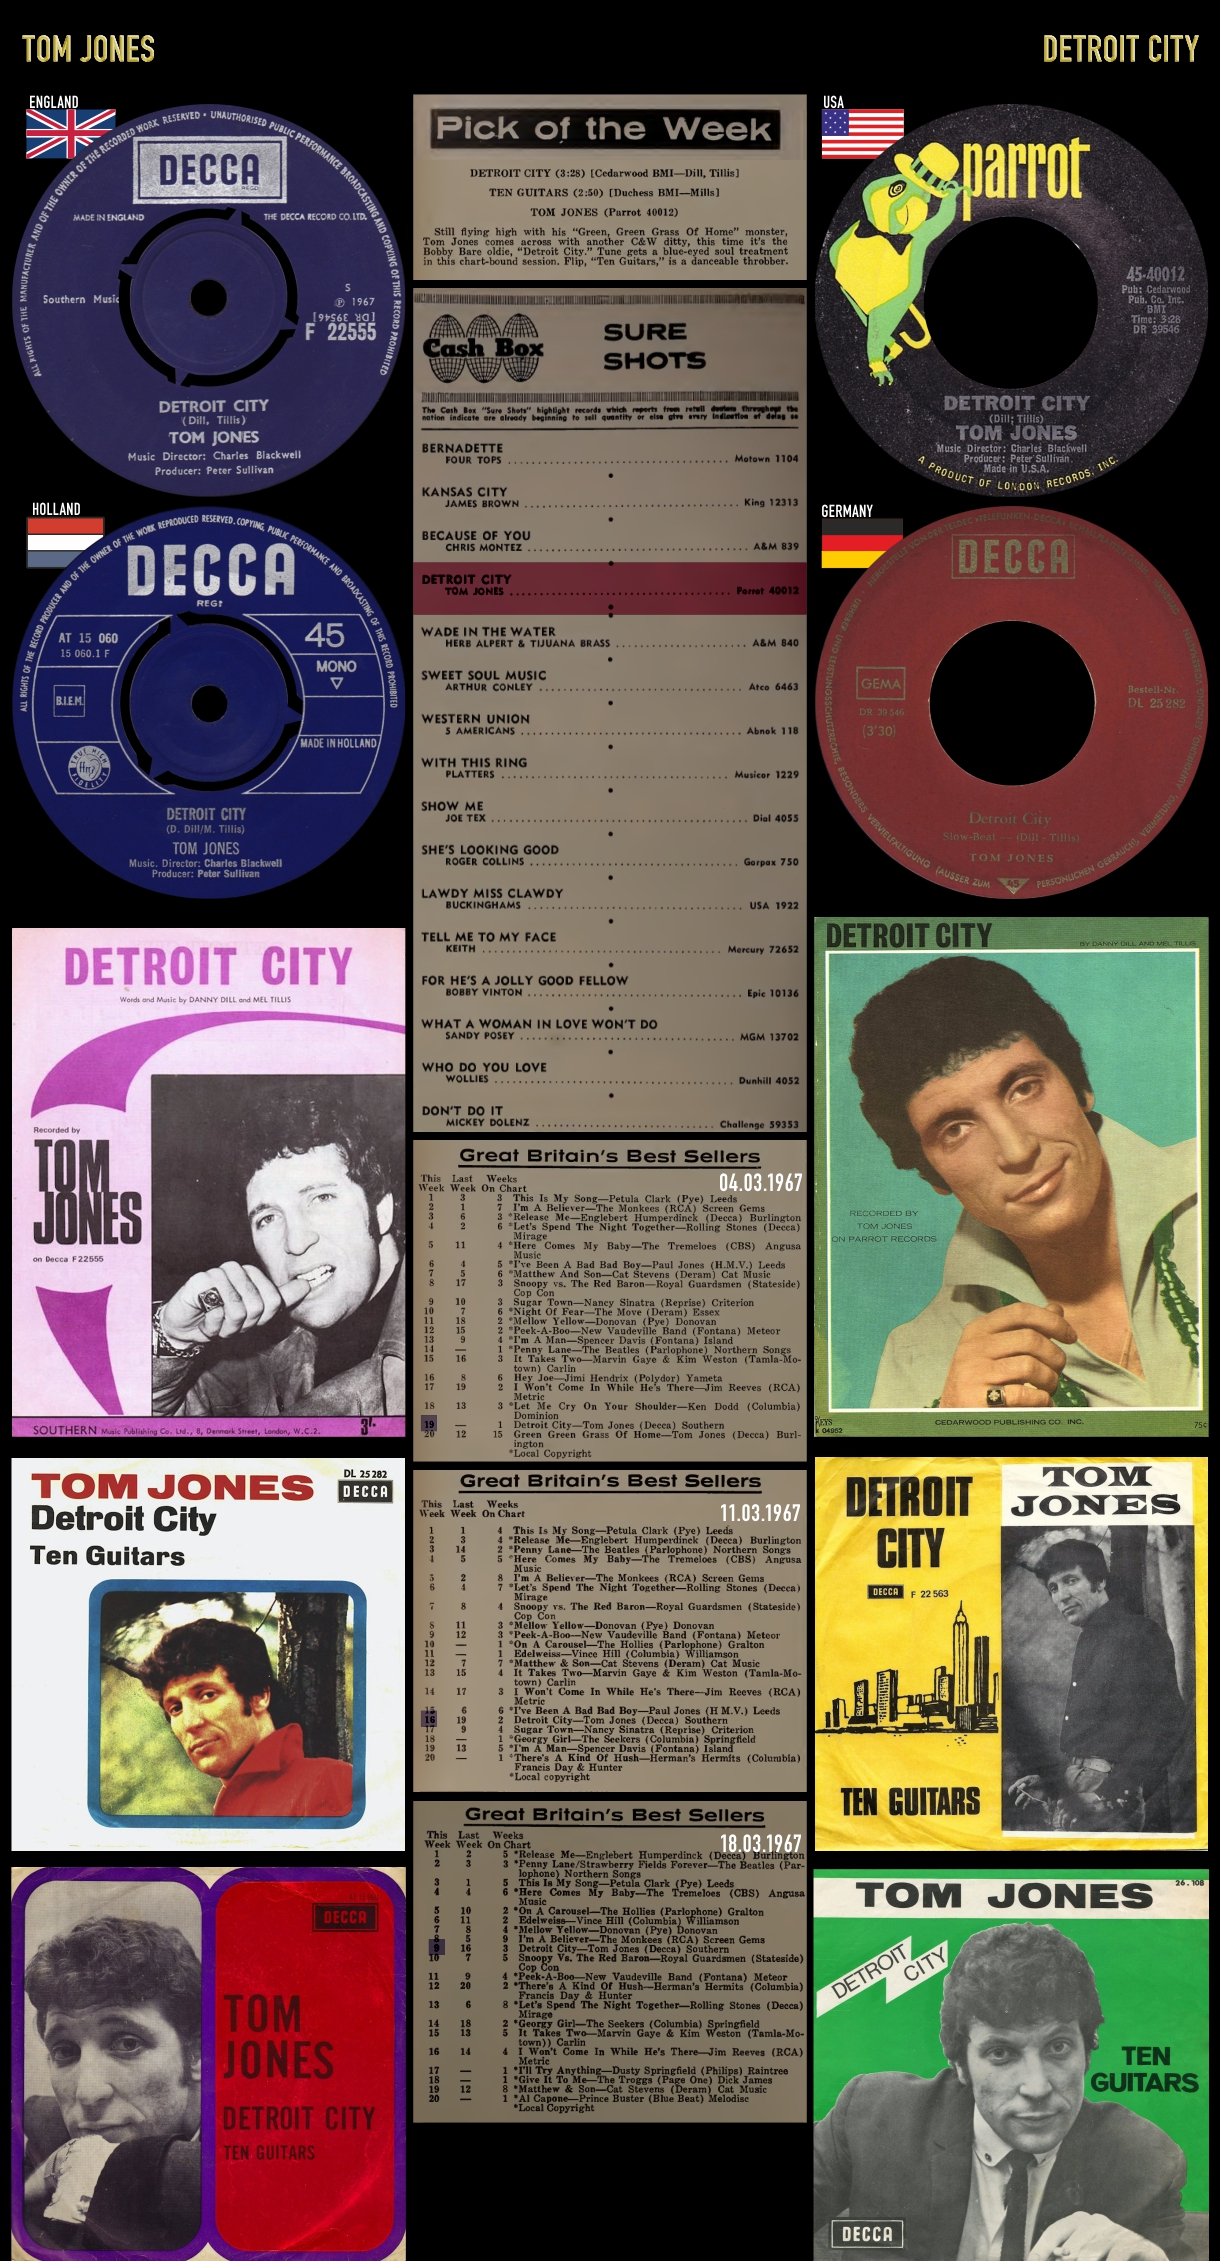 670415_Tom Jones_Detroit City